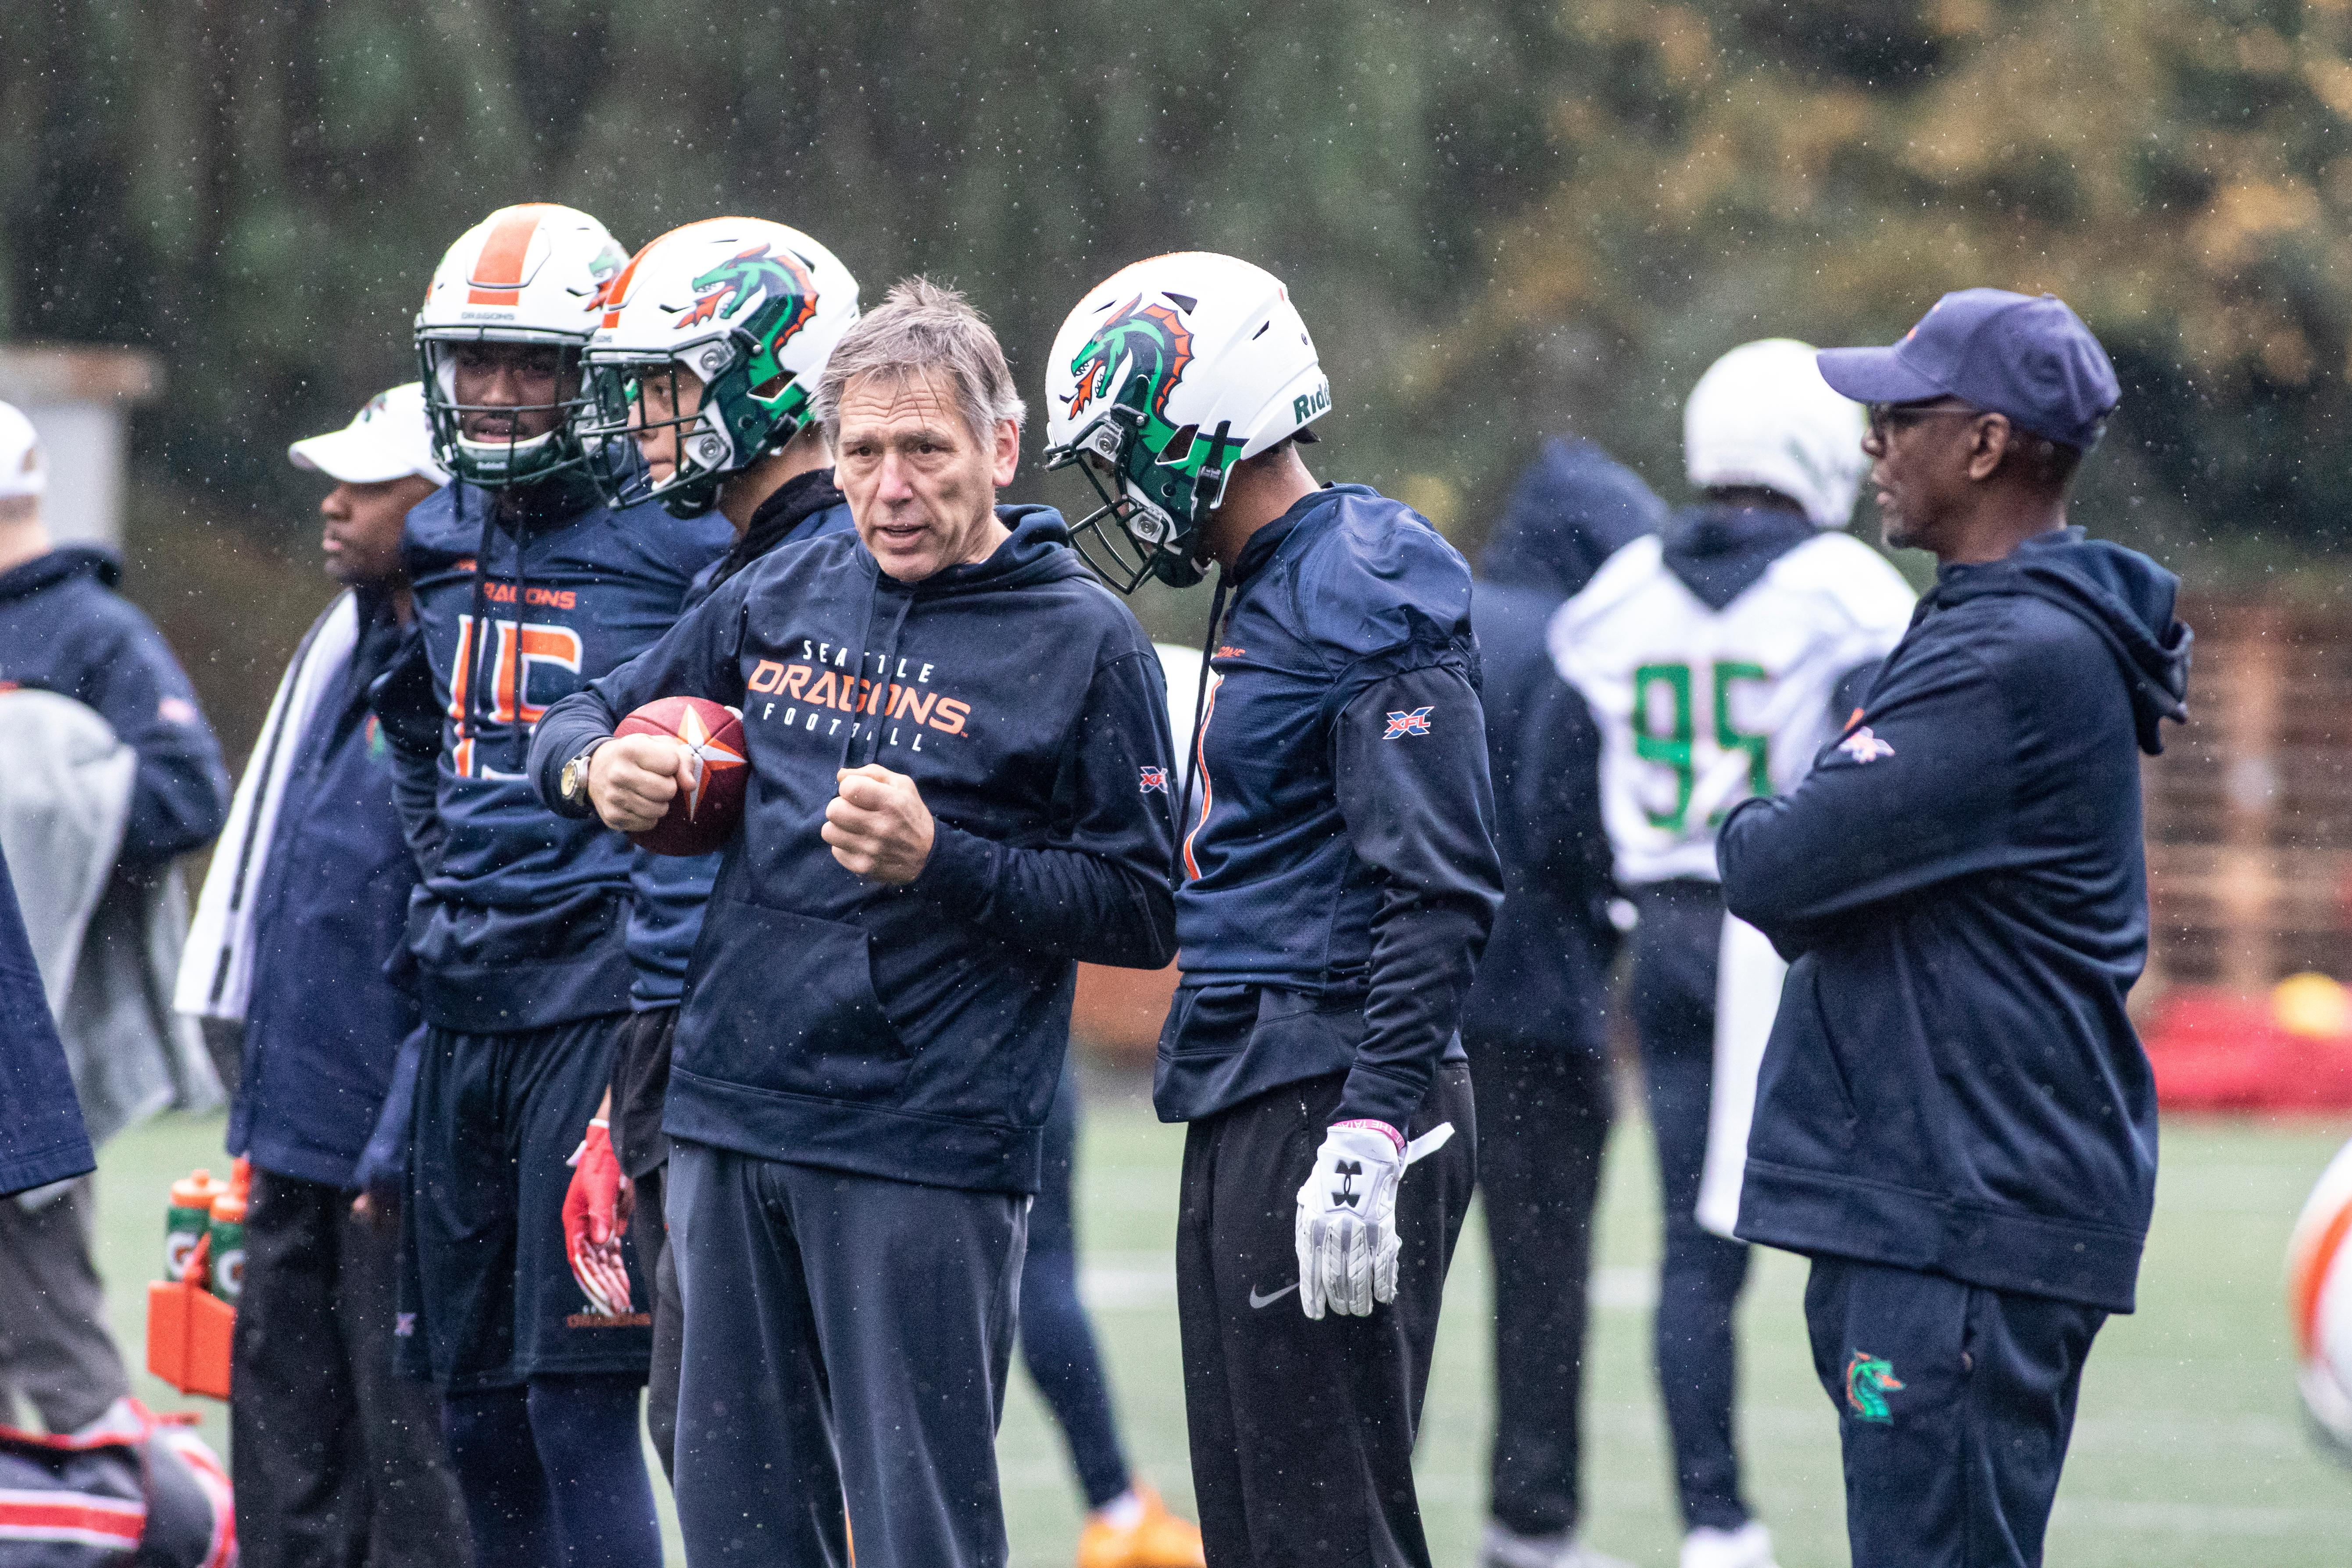 The XFL is back, as Jim Zorn leads the Seattle Dragons on their 10-game schedule in the 2020 season.